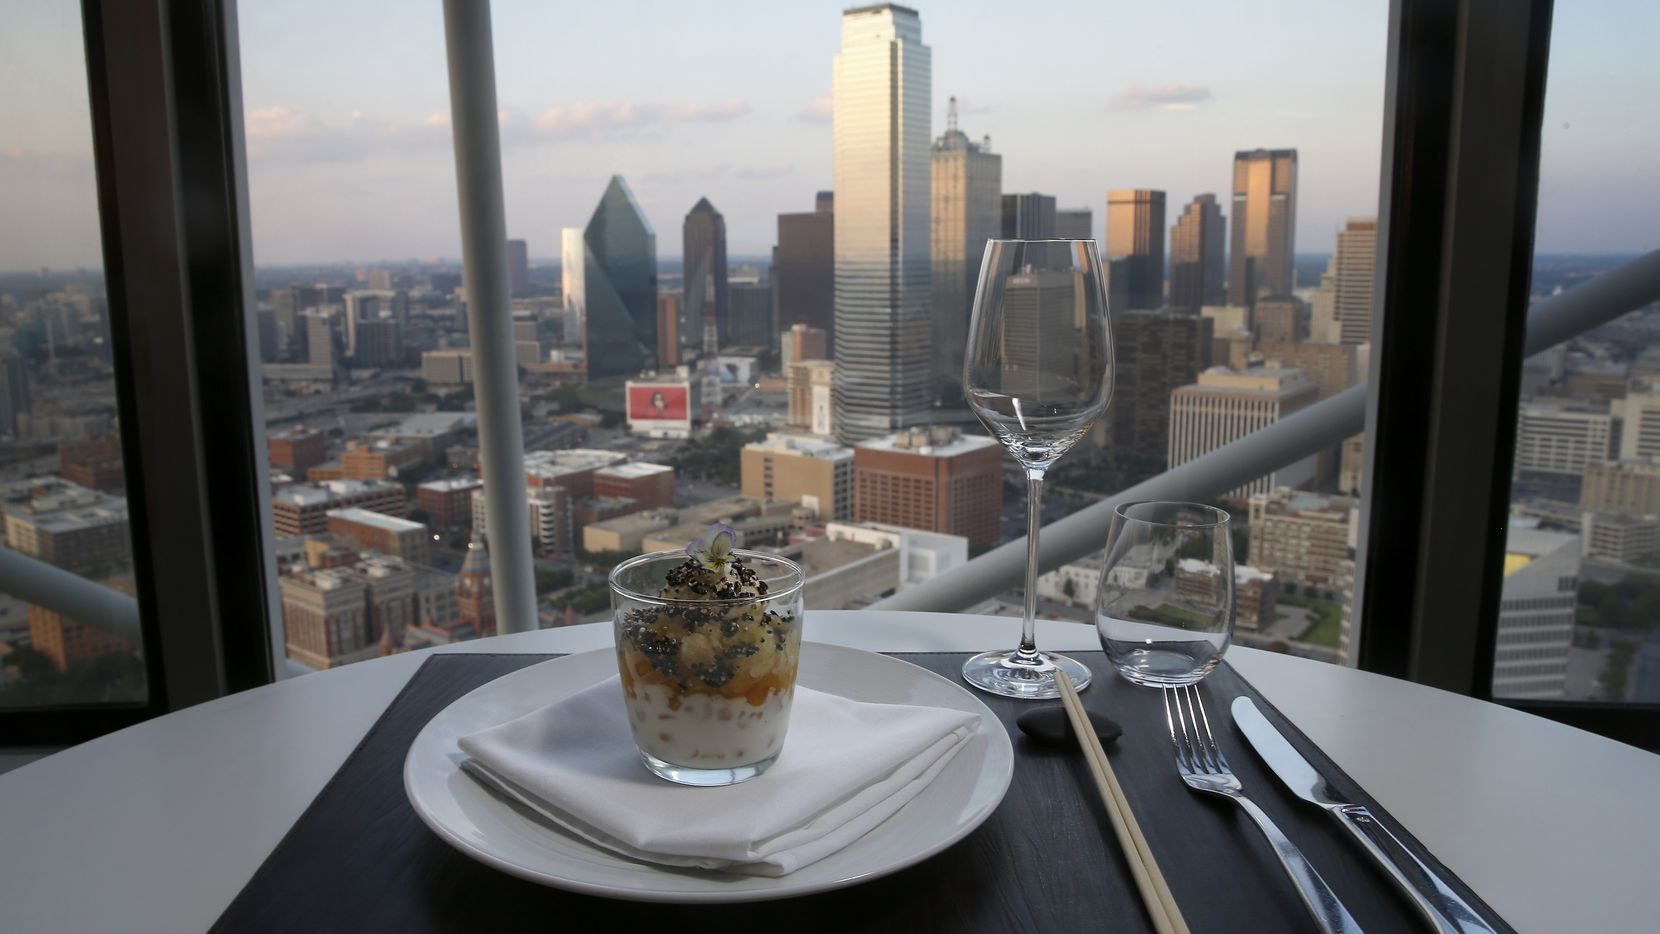 A desert of halo halo with a Dallas skyline in the background at Five Sixty by Wolfgang Puck in Dallas, Sunday, Sept. 4, 2016. (Jae S. Lee/The Dallas Morning News)